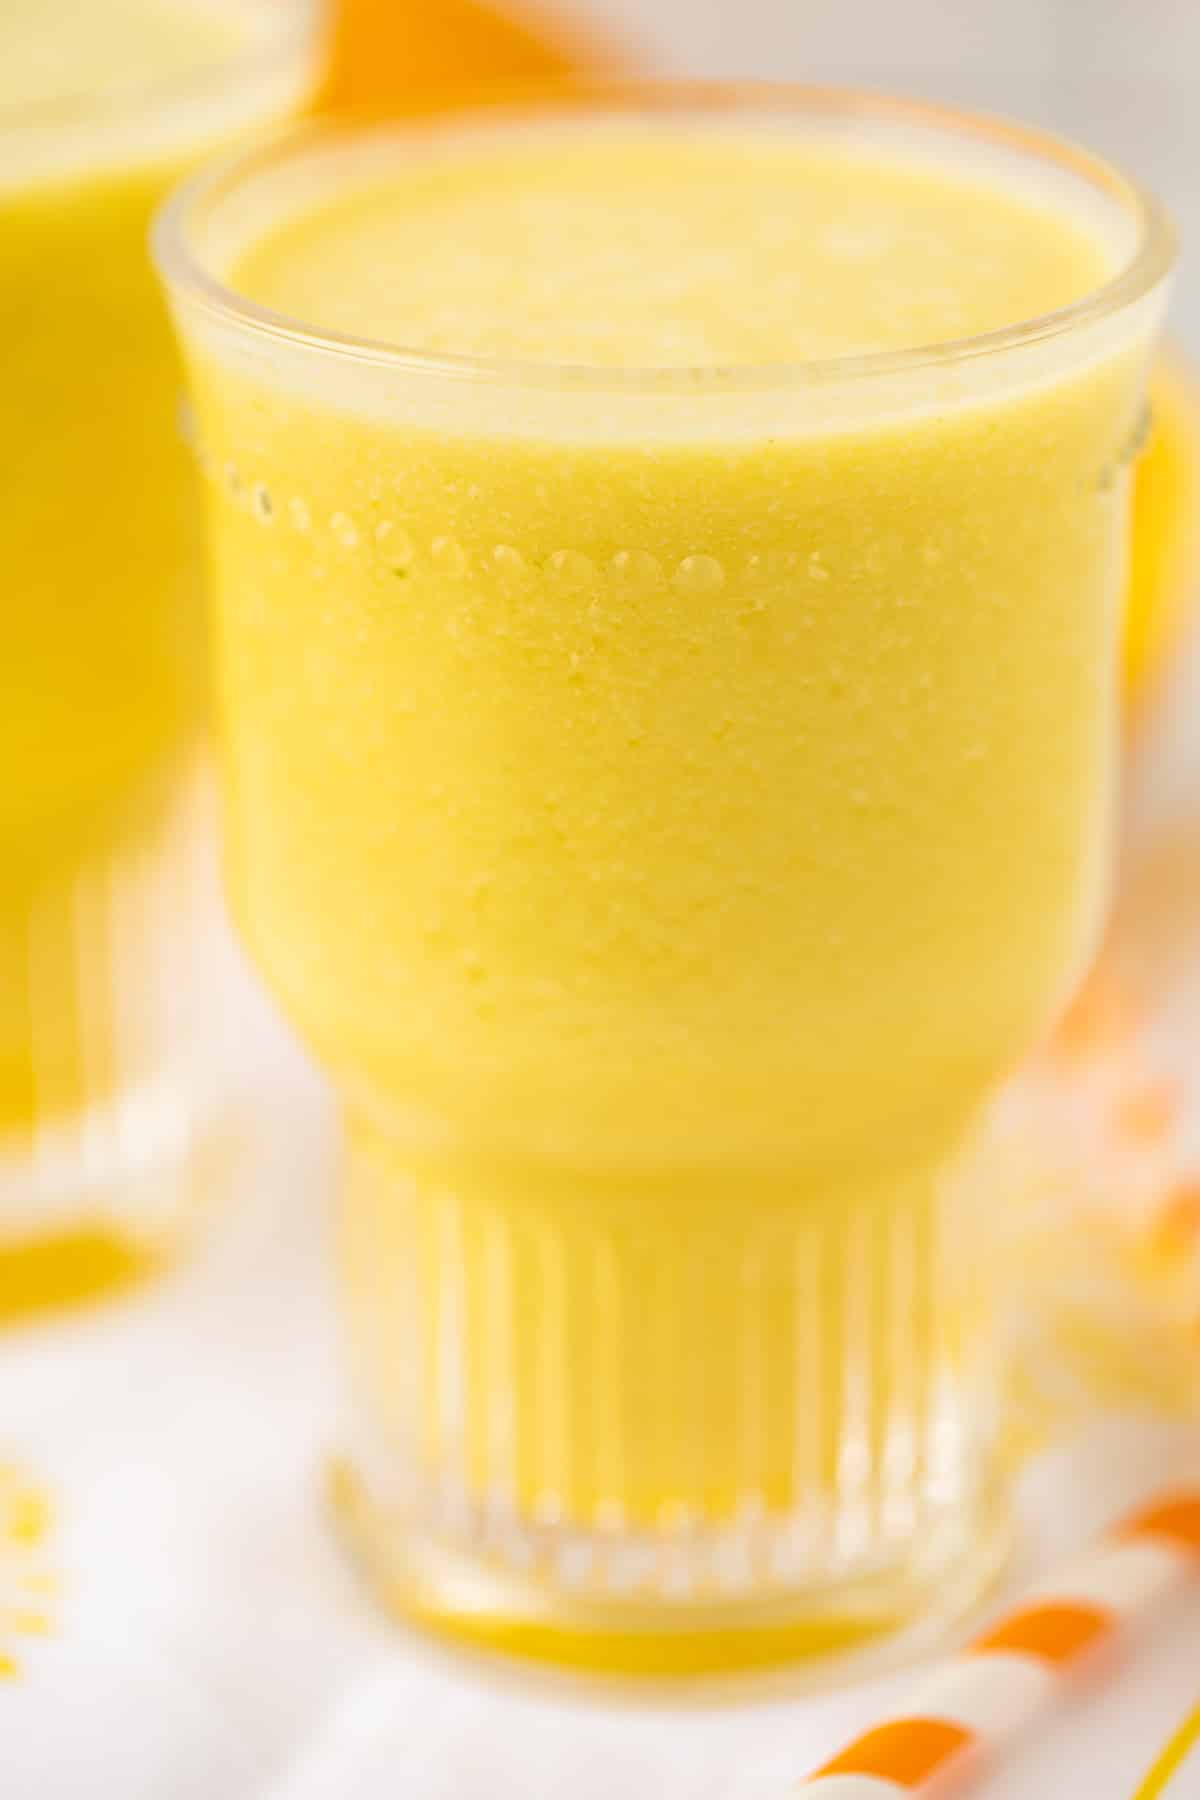 glass of yellow smoothie